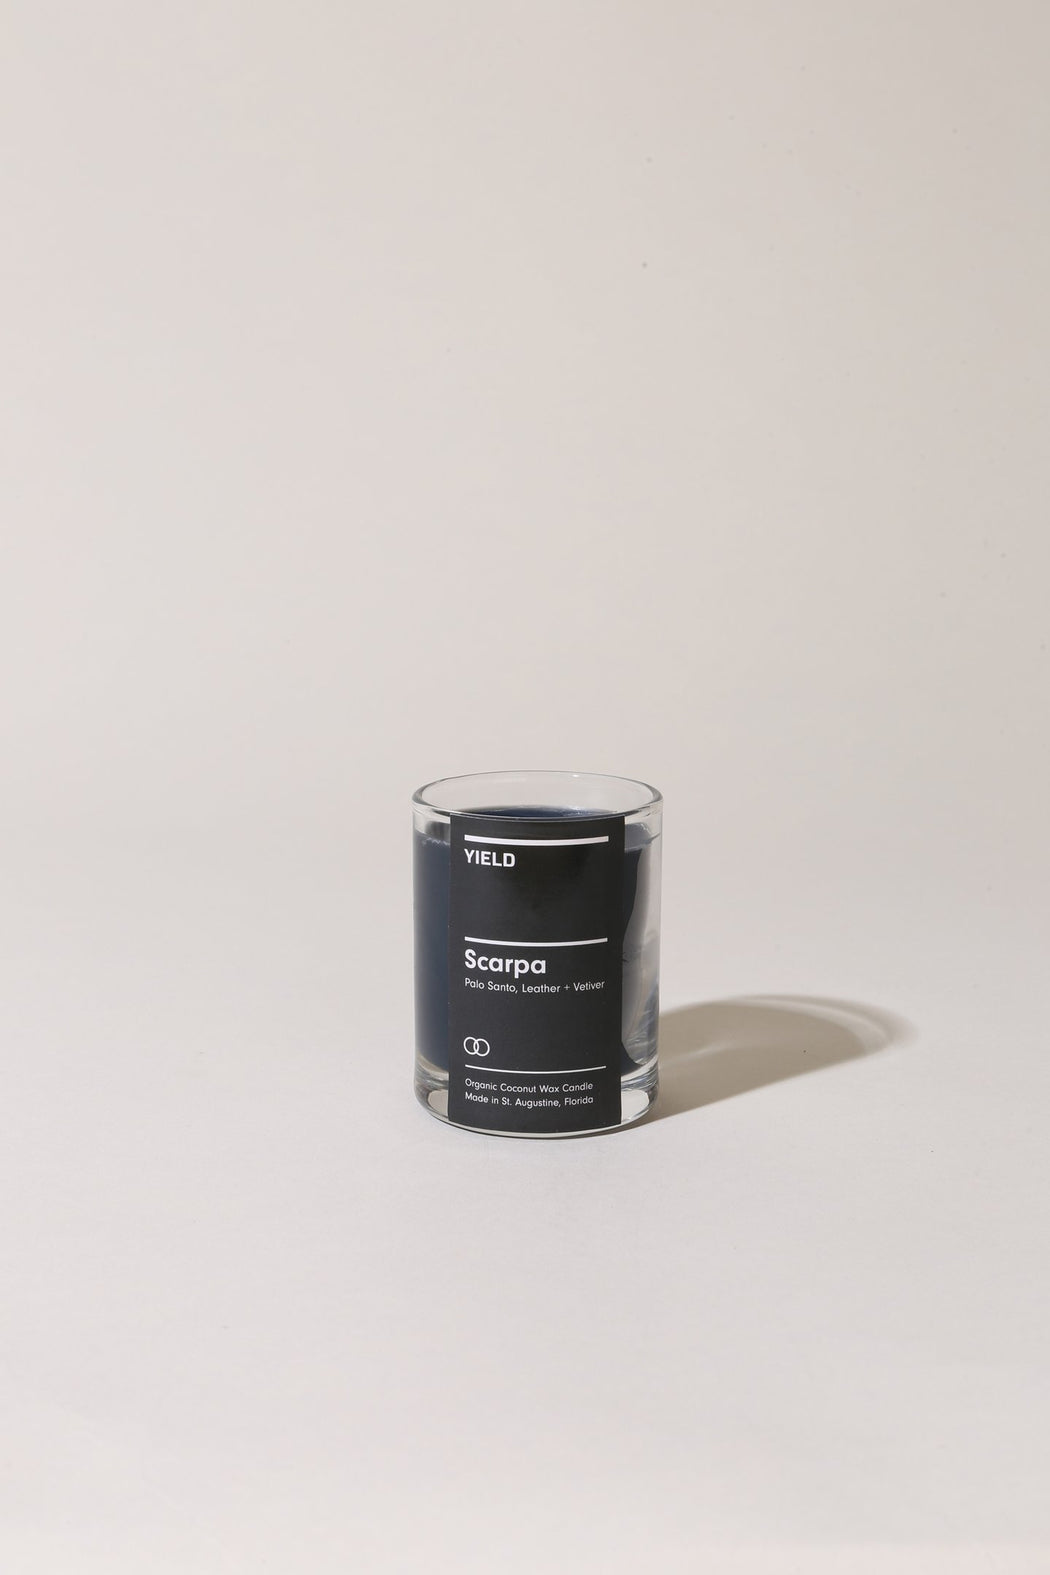 YIELD - 2.5 oz Scarpa Votive Candle